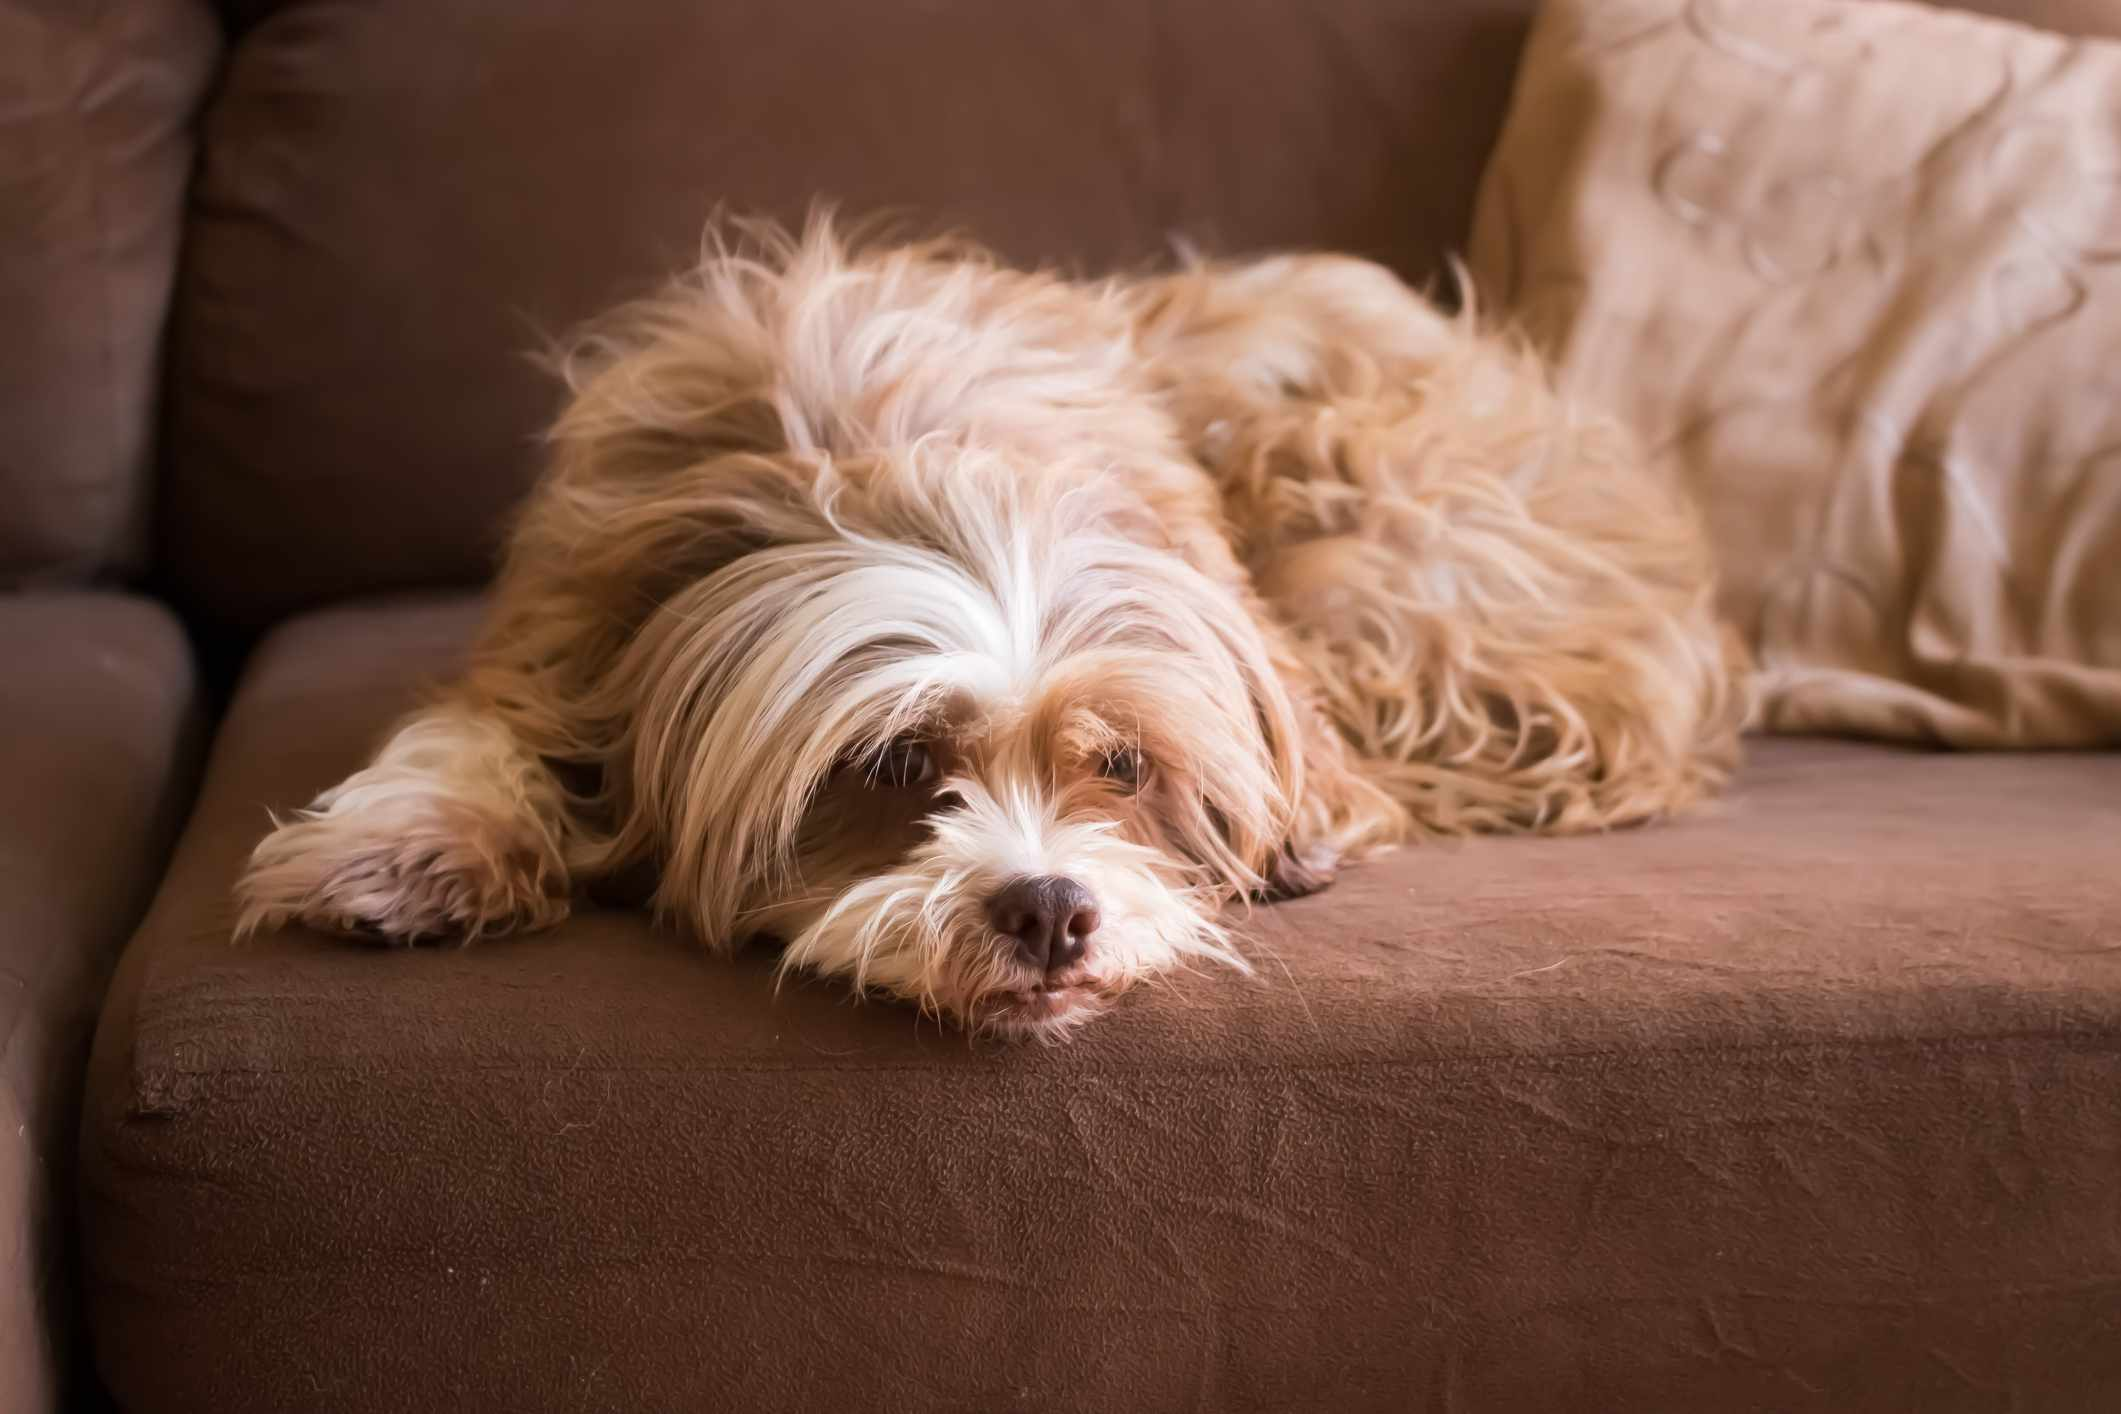 A Lhasa Apso lounges on the couch.